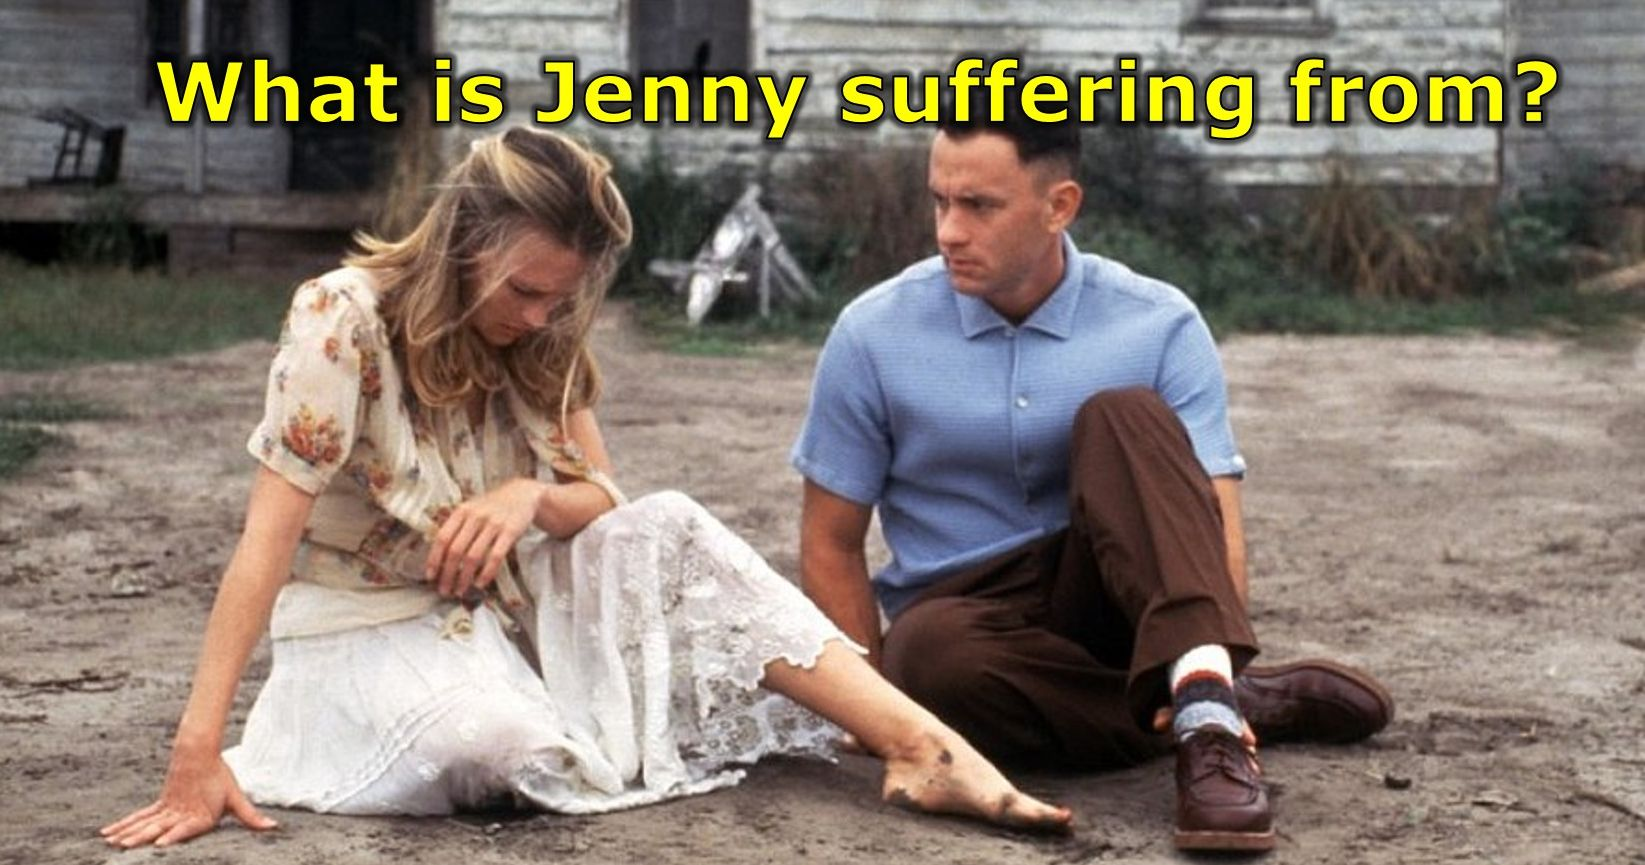 Do You Remember The Smallest Details From Forrest Gump